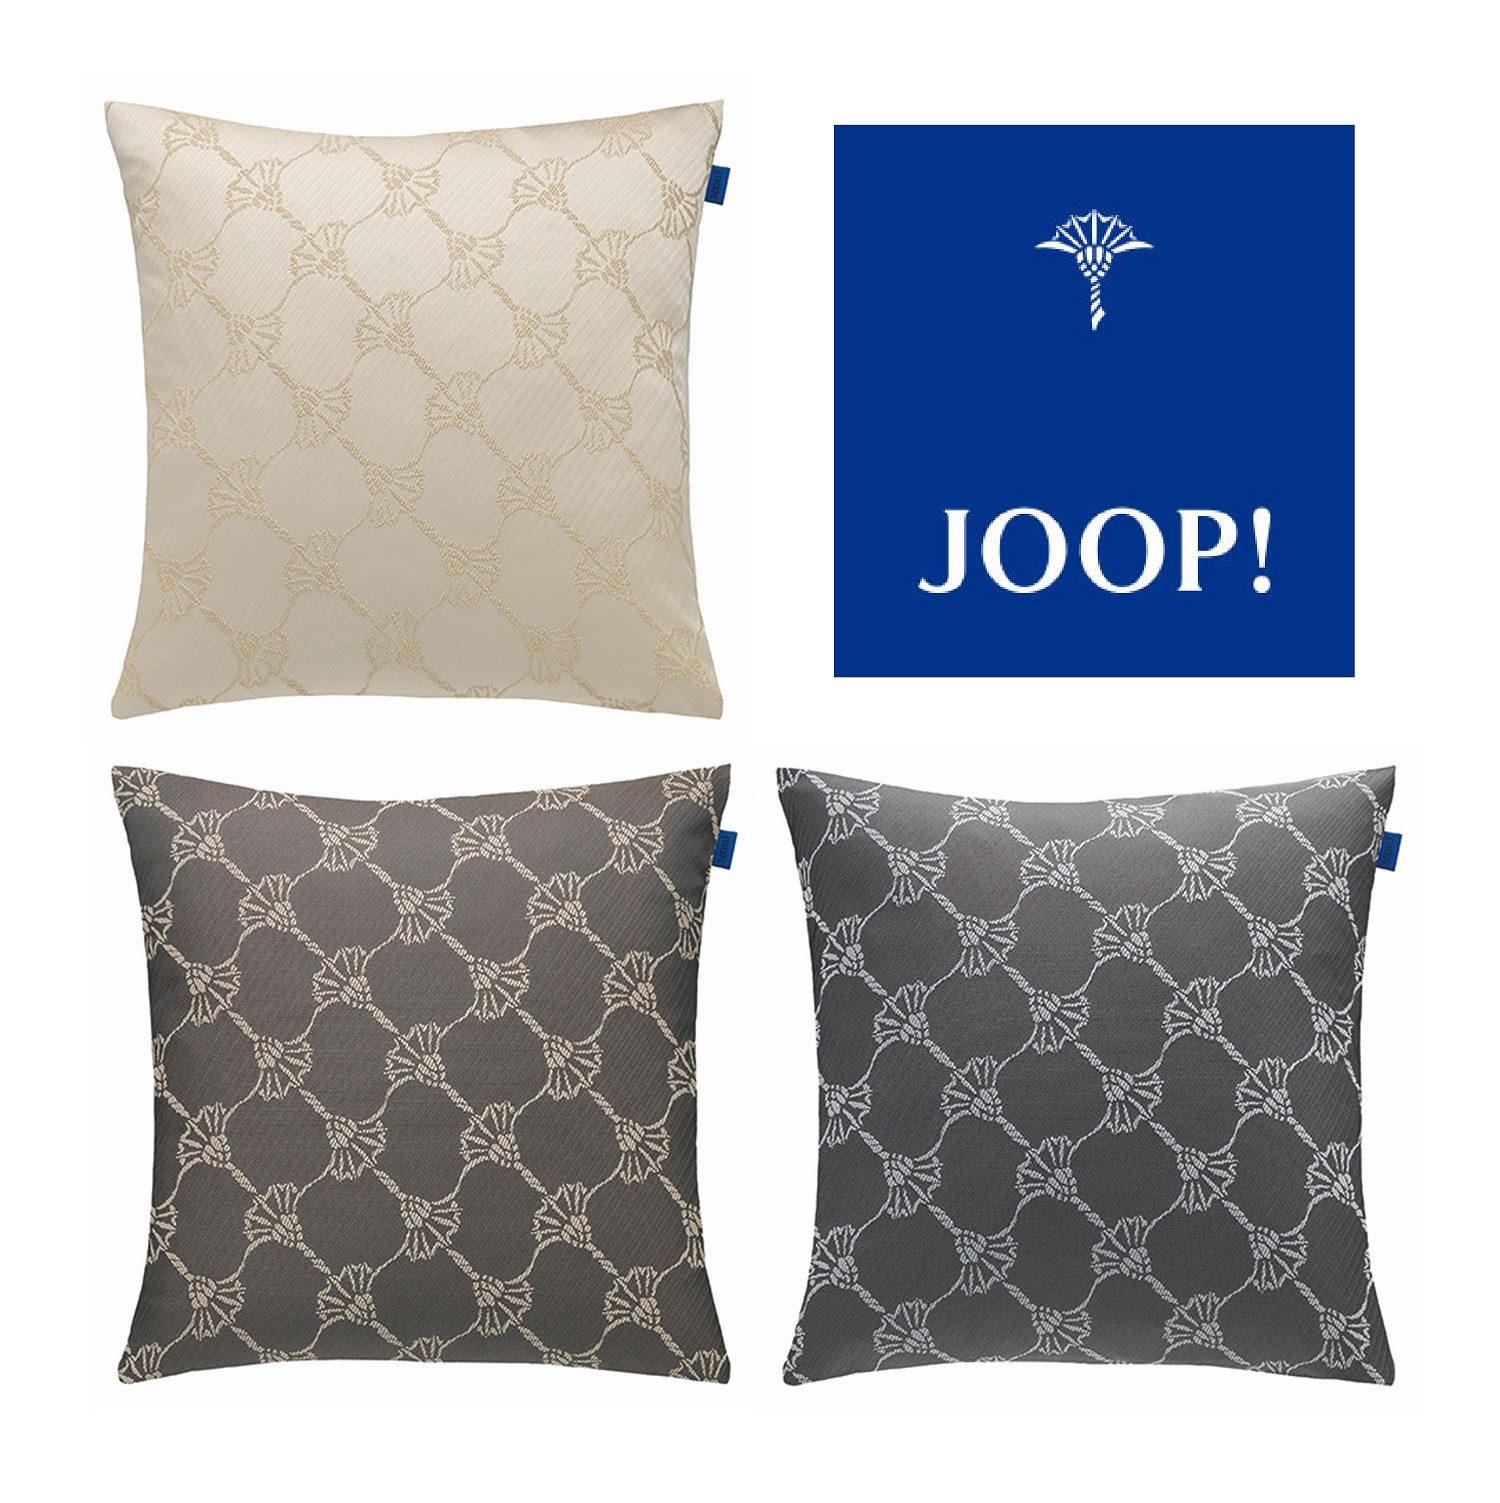 JOOP! Kissenhülle HABIT Cornflower allover Webstruktur 40x40